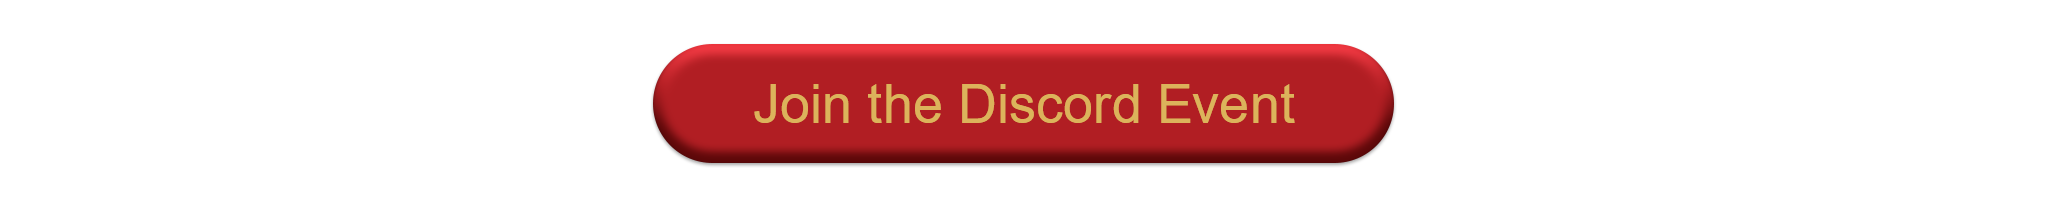 Join Discord Event